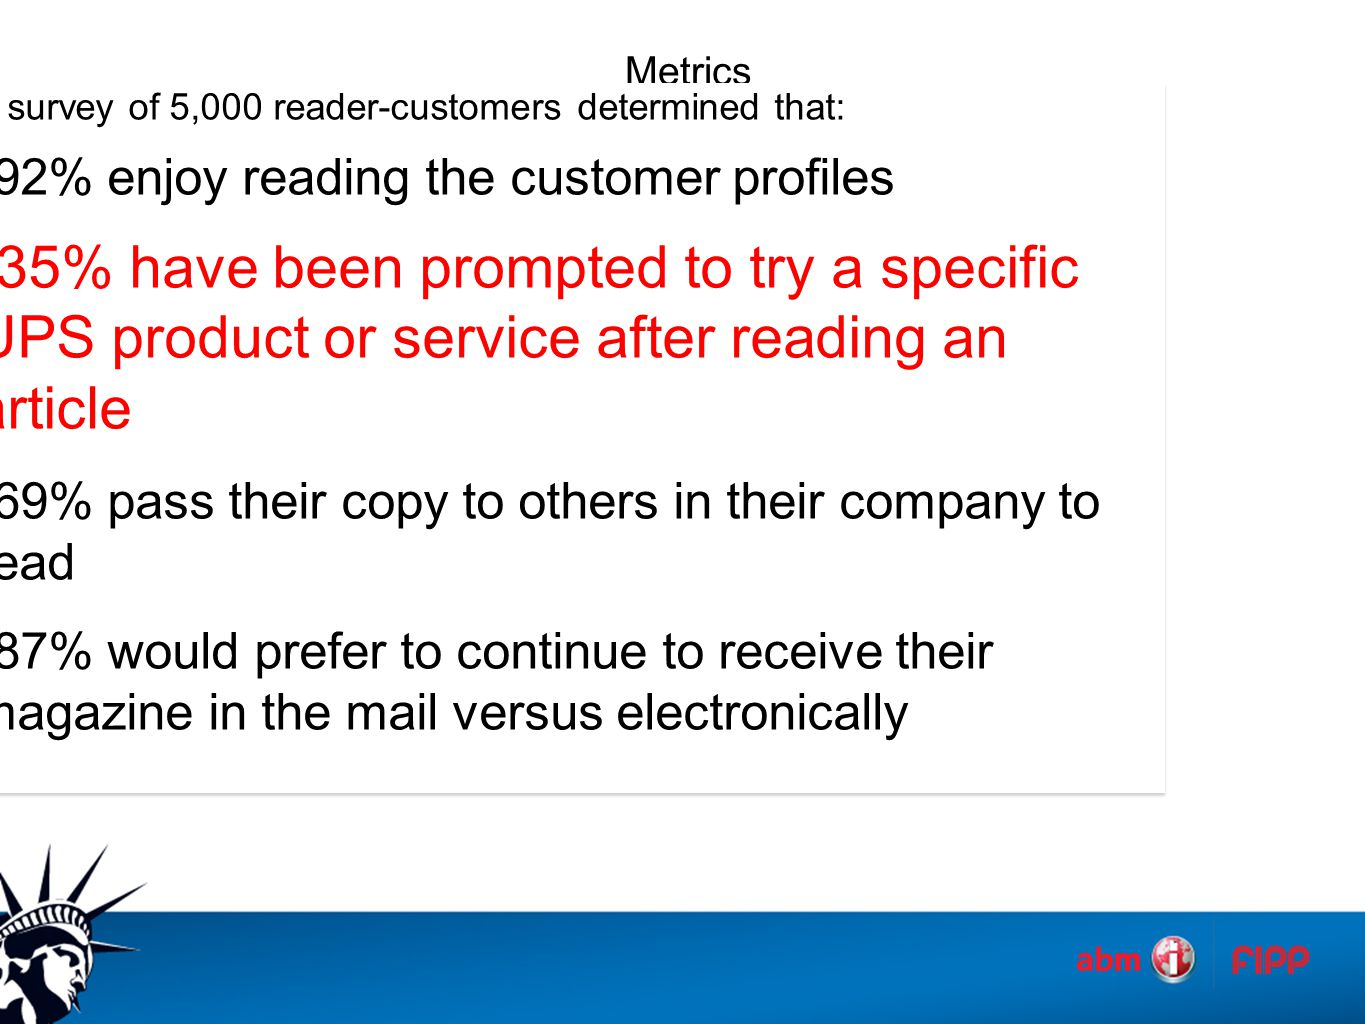 A survey of 5,000 reader-customers determined that: 92% enjoy reading the customer profiles 35% have been prompted to try a specific UPS product or service after reading an article 69% pass their copy to others in their company to read 87% would prefer to continue to receive their magazine in the mail versus electronically